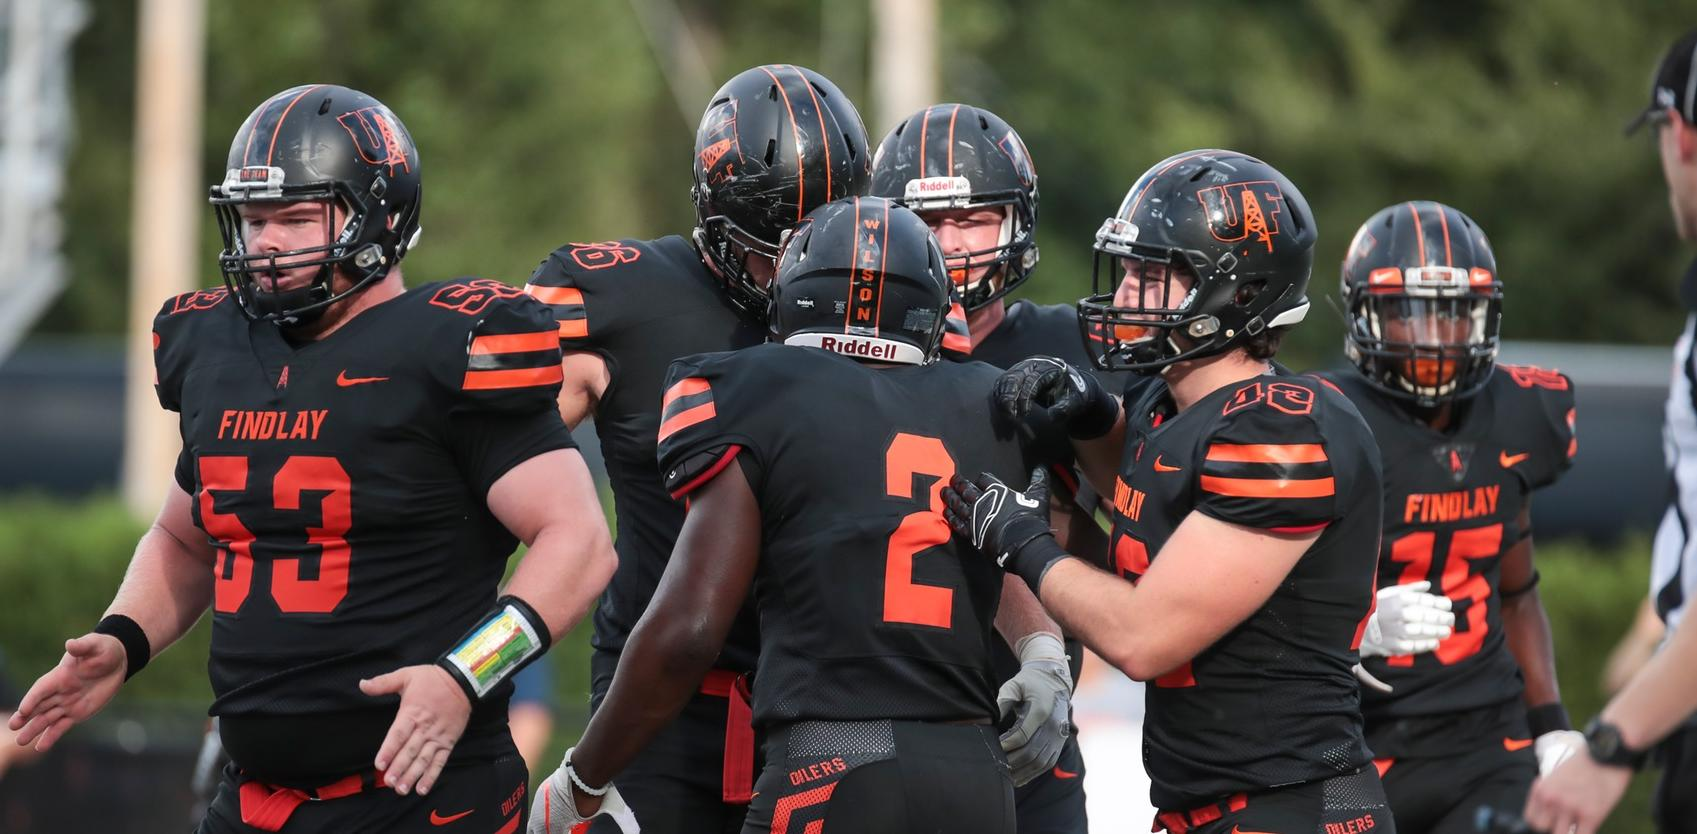 Findlay Heads South for Non-League Matchup at Charleston